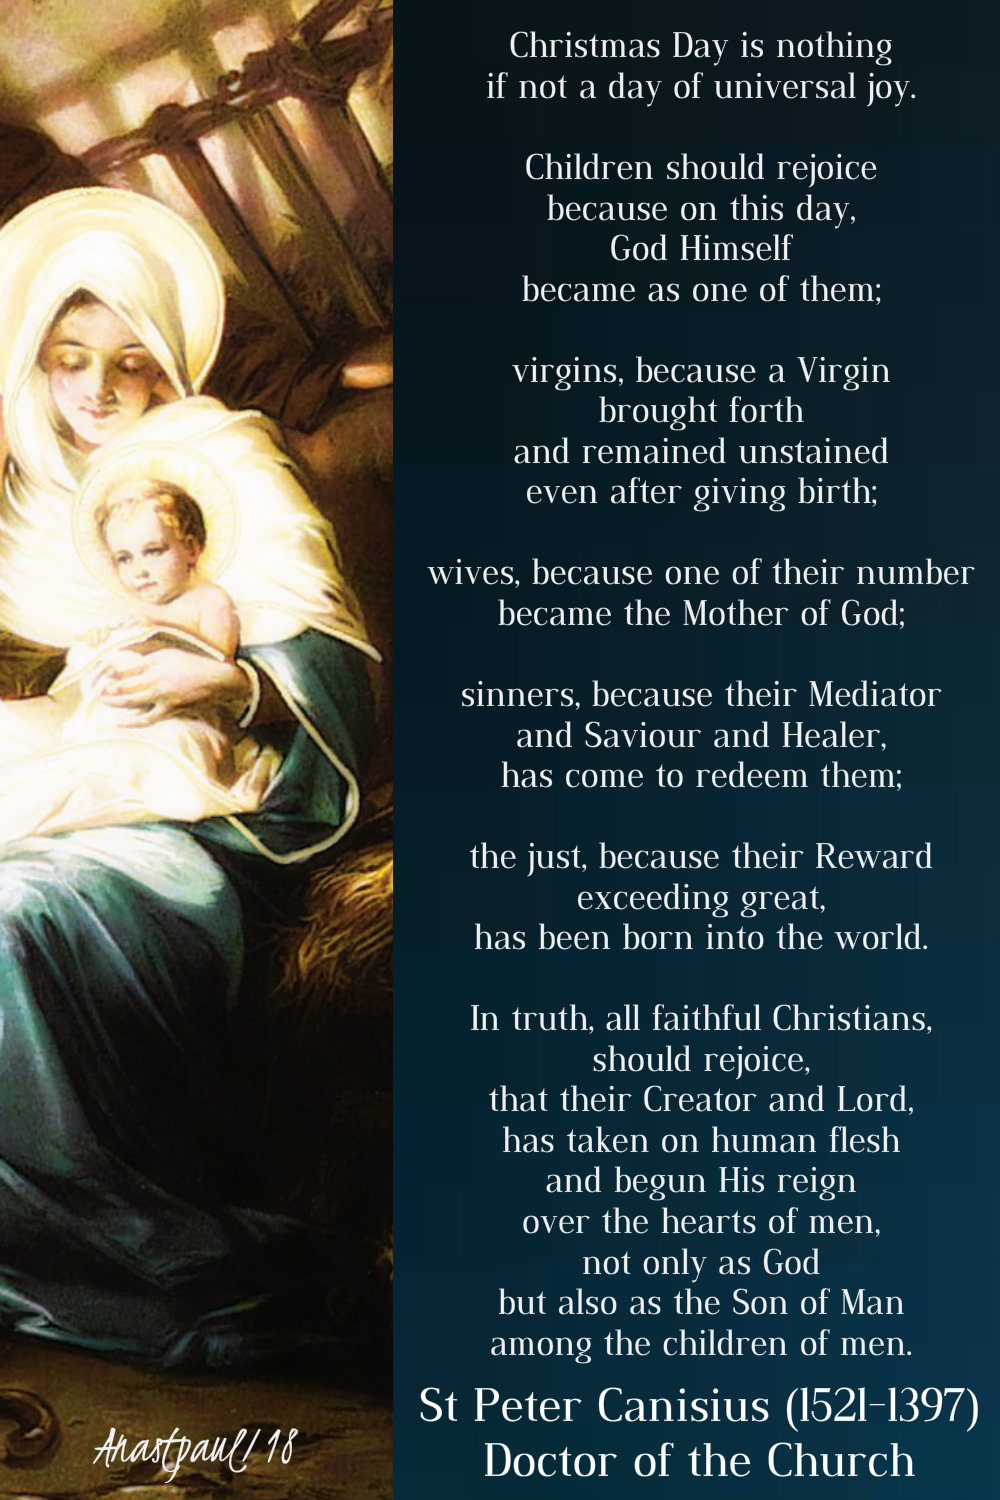 christmas day is nothing if not - st peter canisius - 25 dec 2018